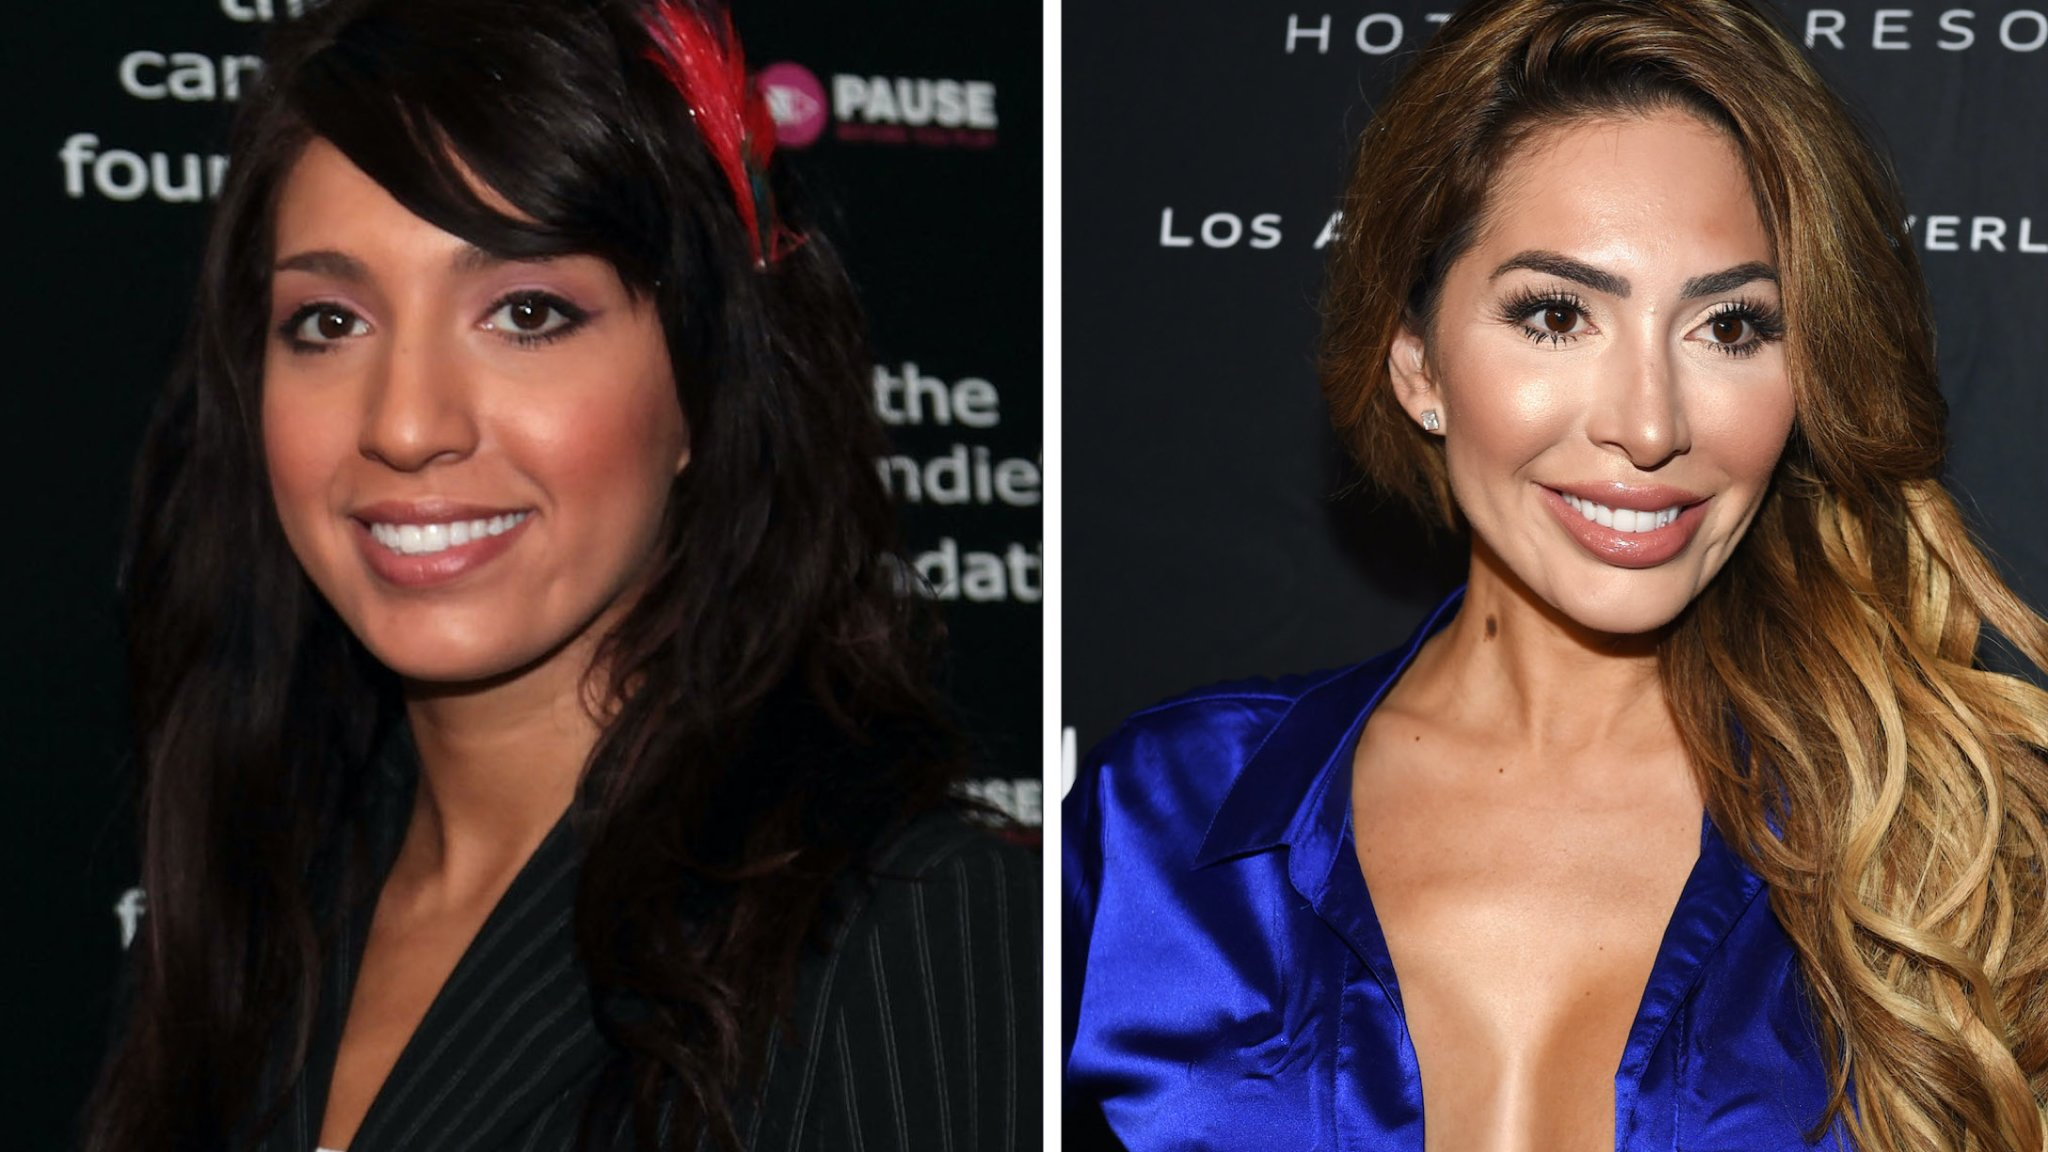 See the Before & After Pics of These Reality Star Moms' Plastic Surgery